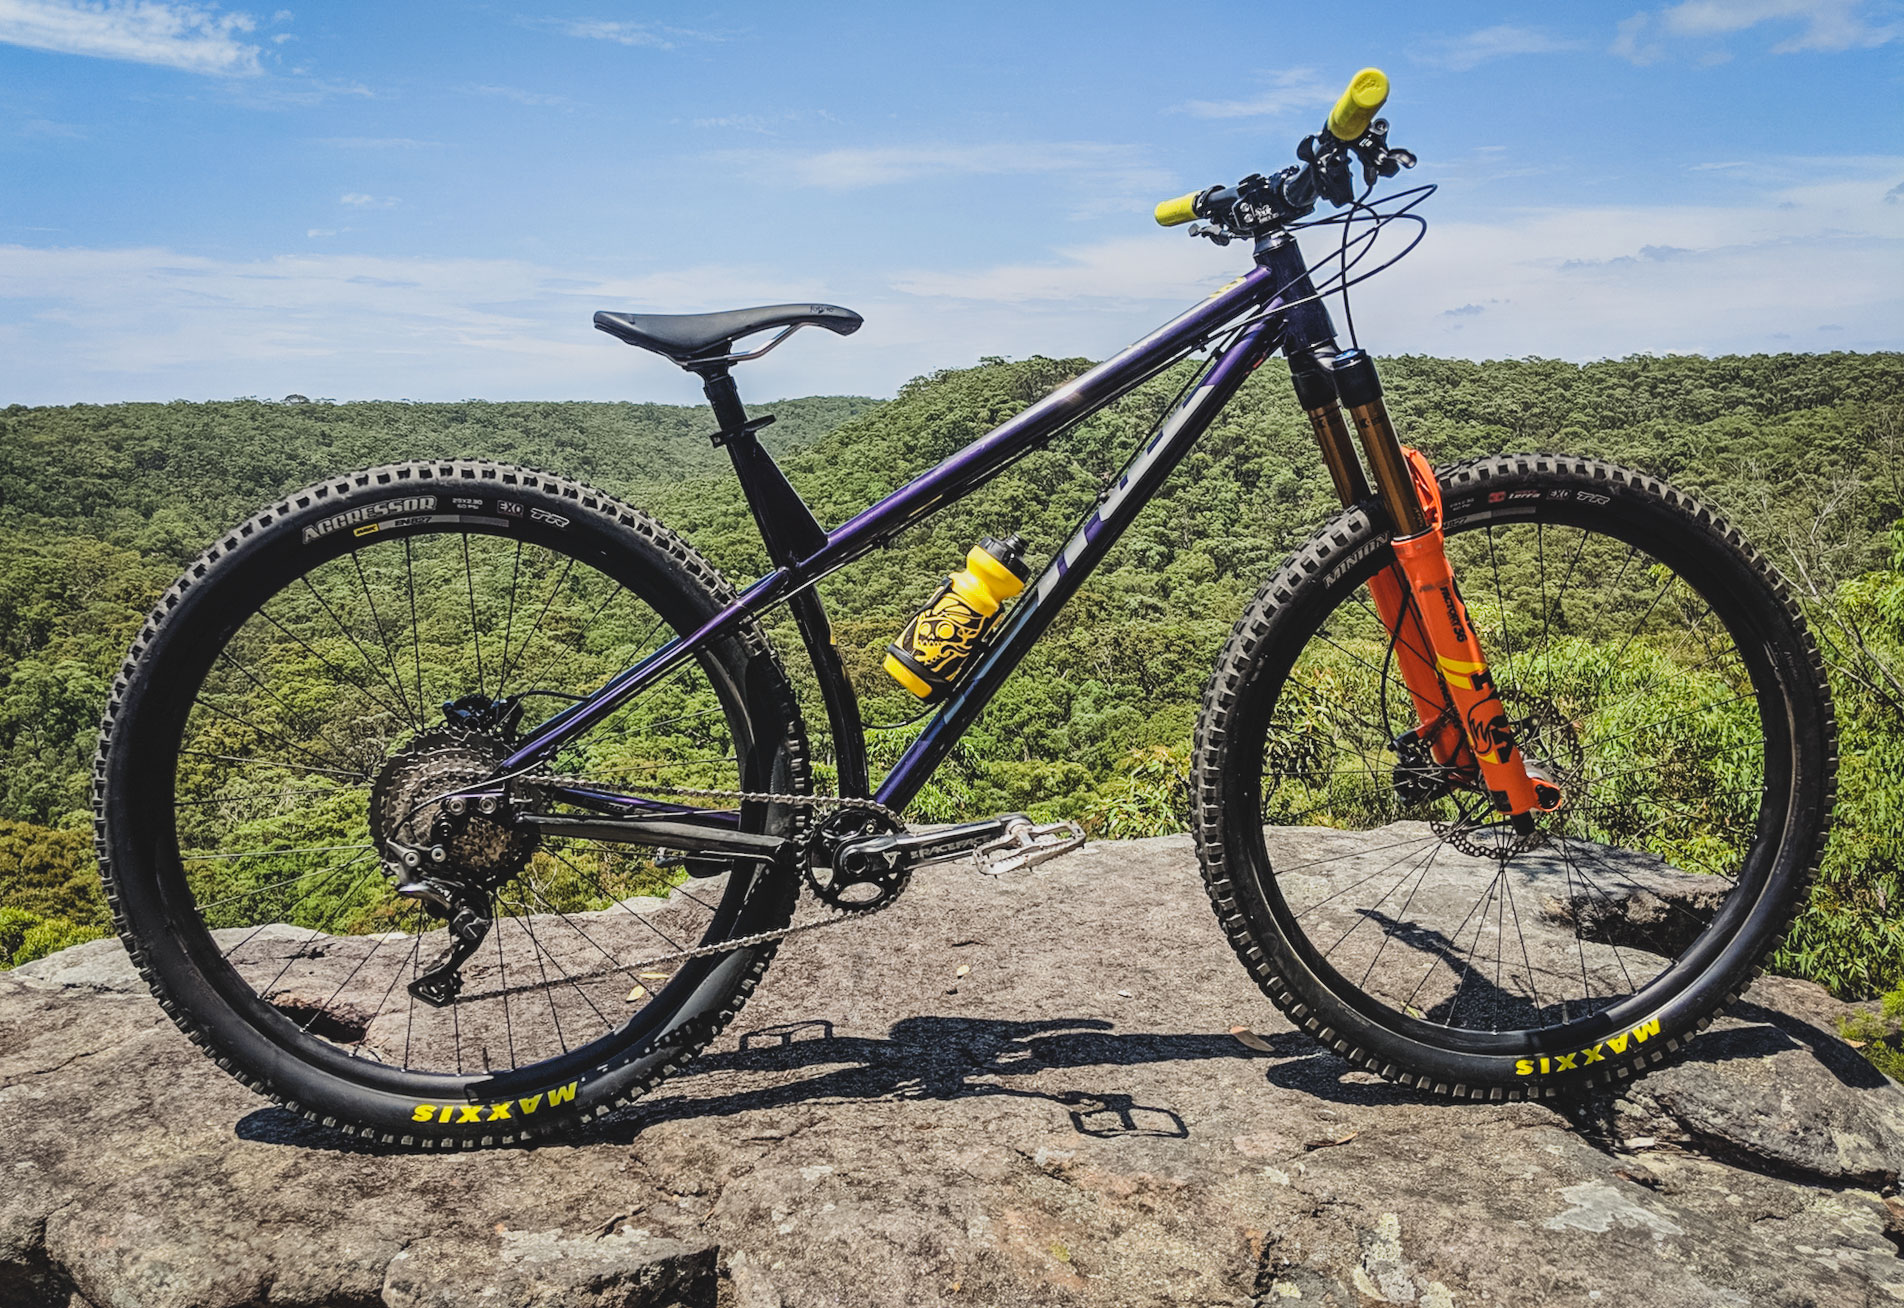 Kona Dream Builds: Craig McPhee's Burly Enduro Smashing Custom Kona Honzo ST